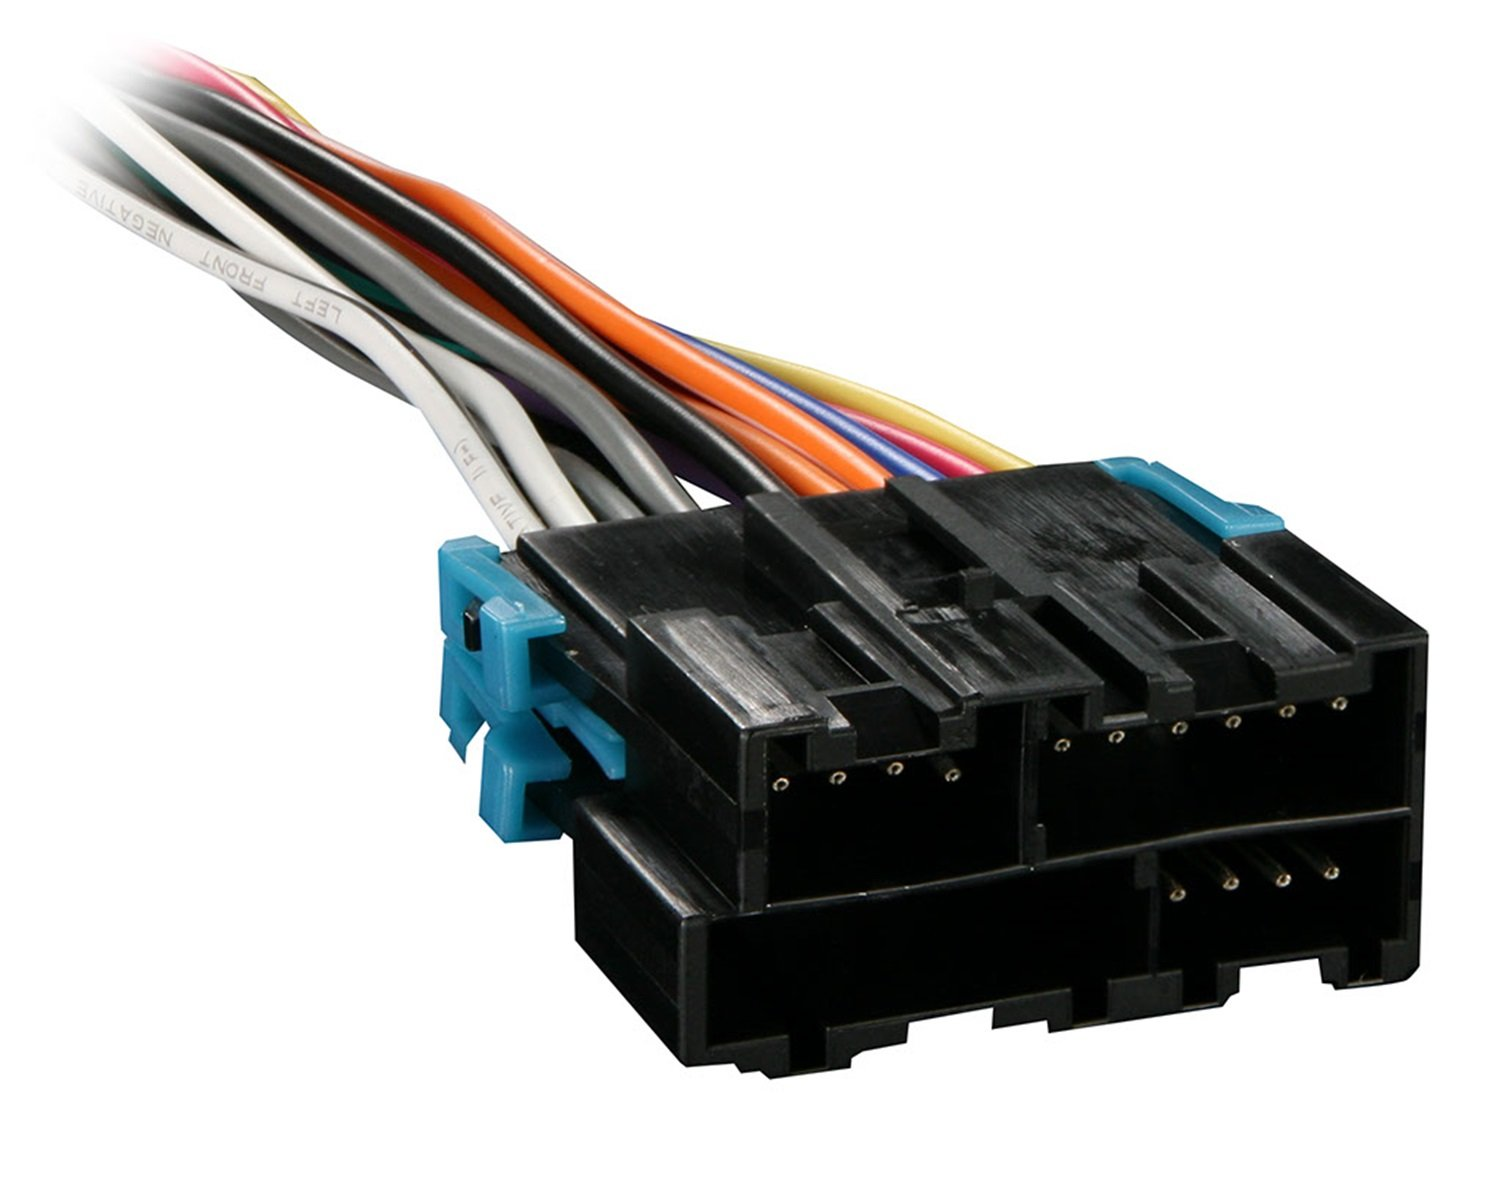 61 CwjZt1hL._SL1500_ radio wiring harnesses amazon com snap on wire harness adapter at bakdesigns.co